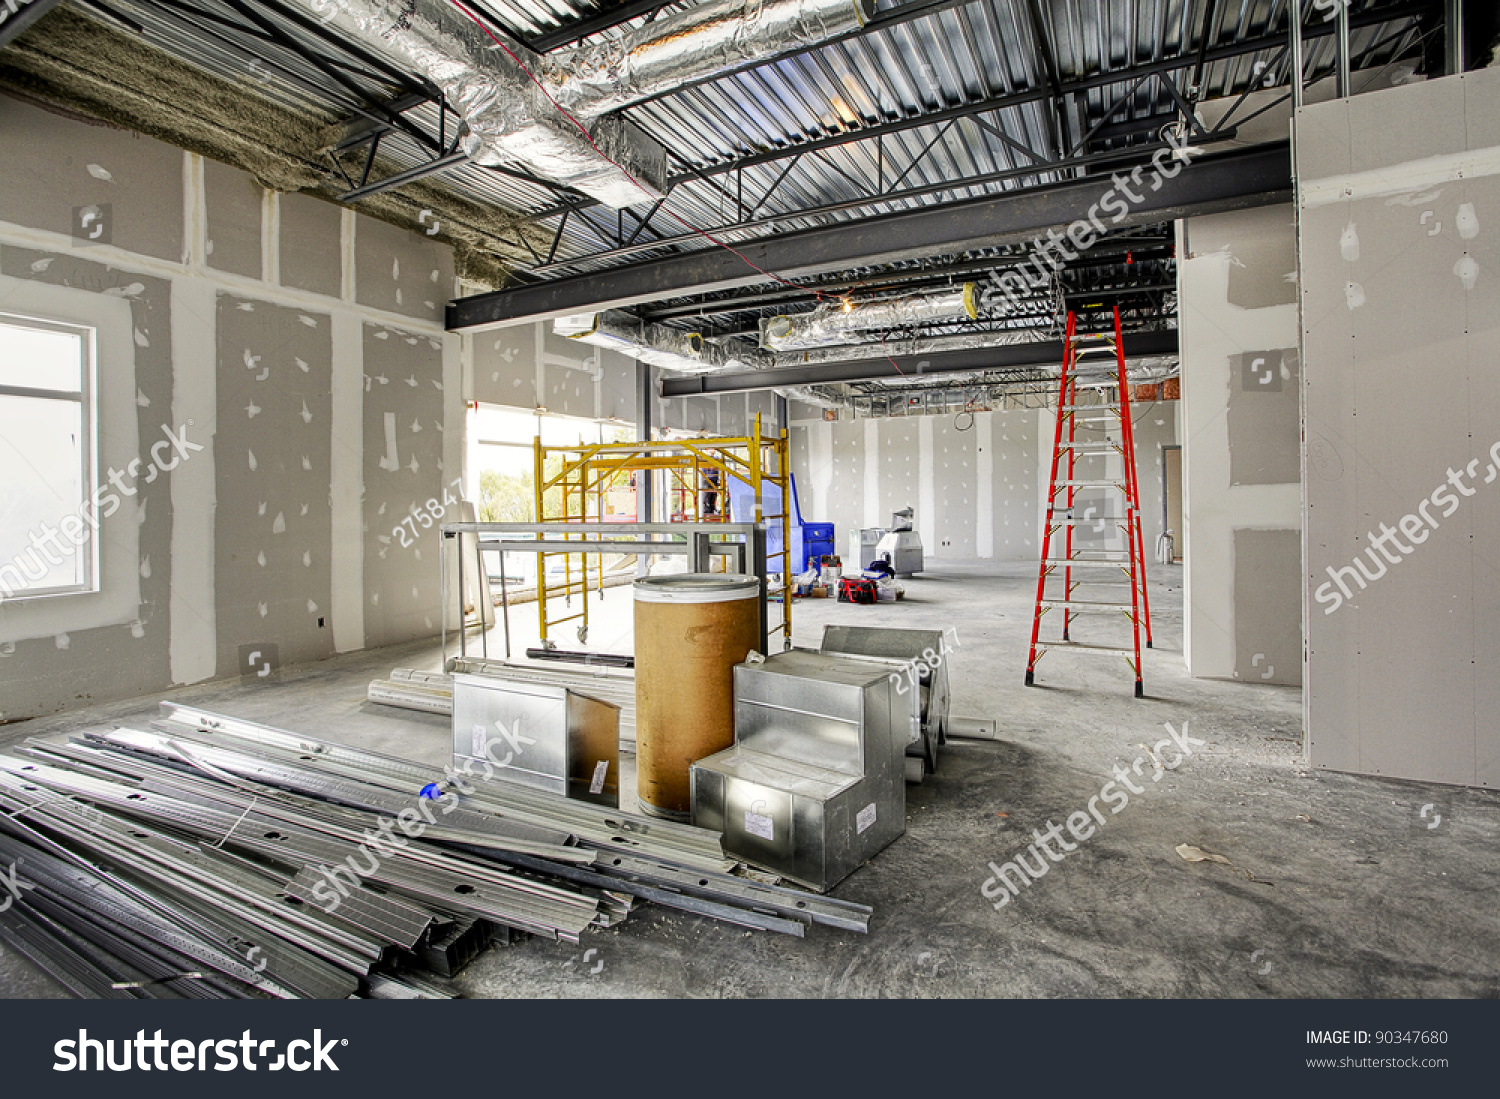 Interior construction site stock photo 90347680 shutterstock for Interior site